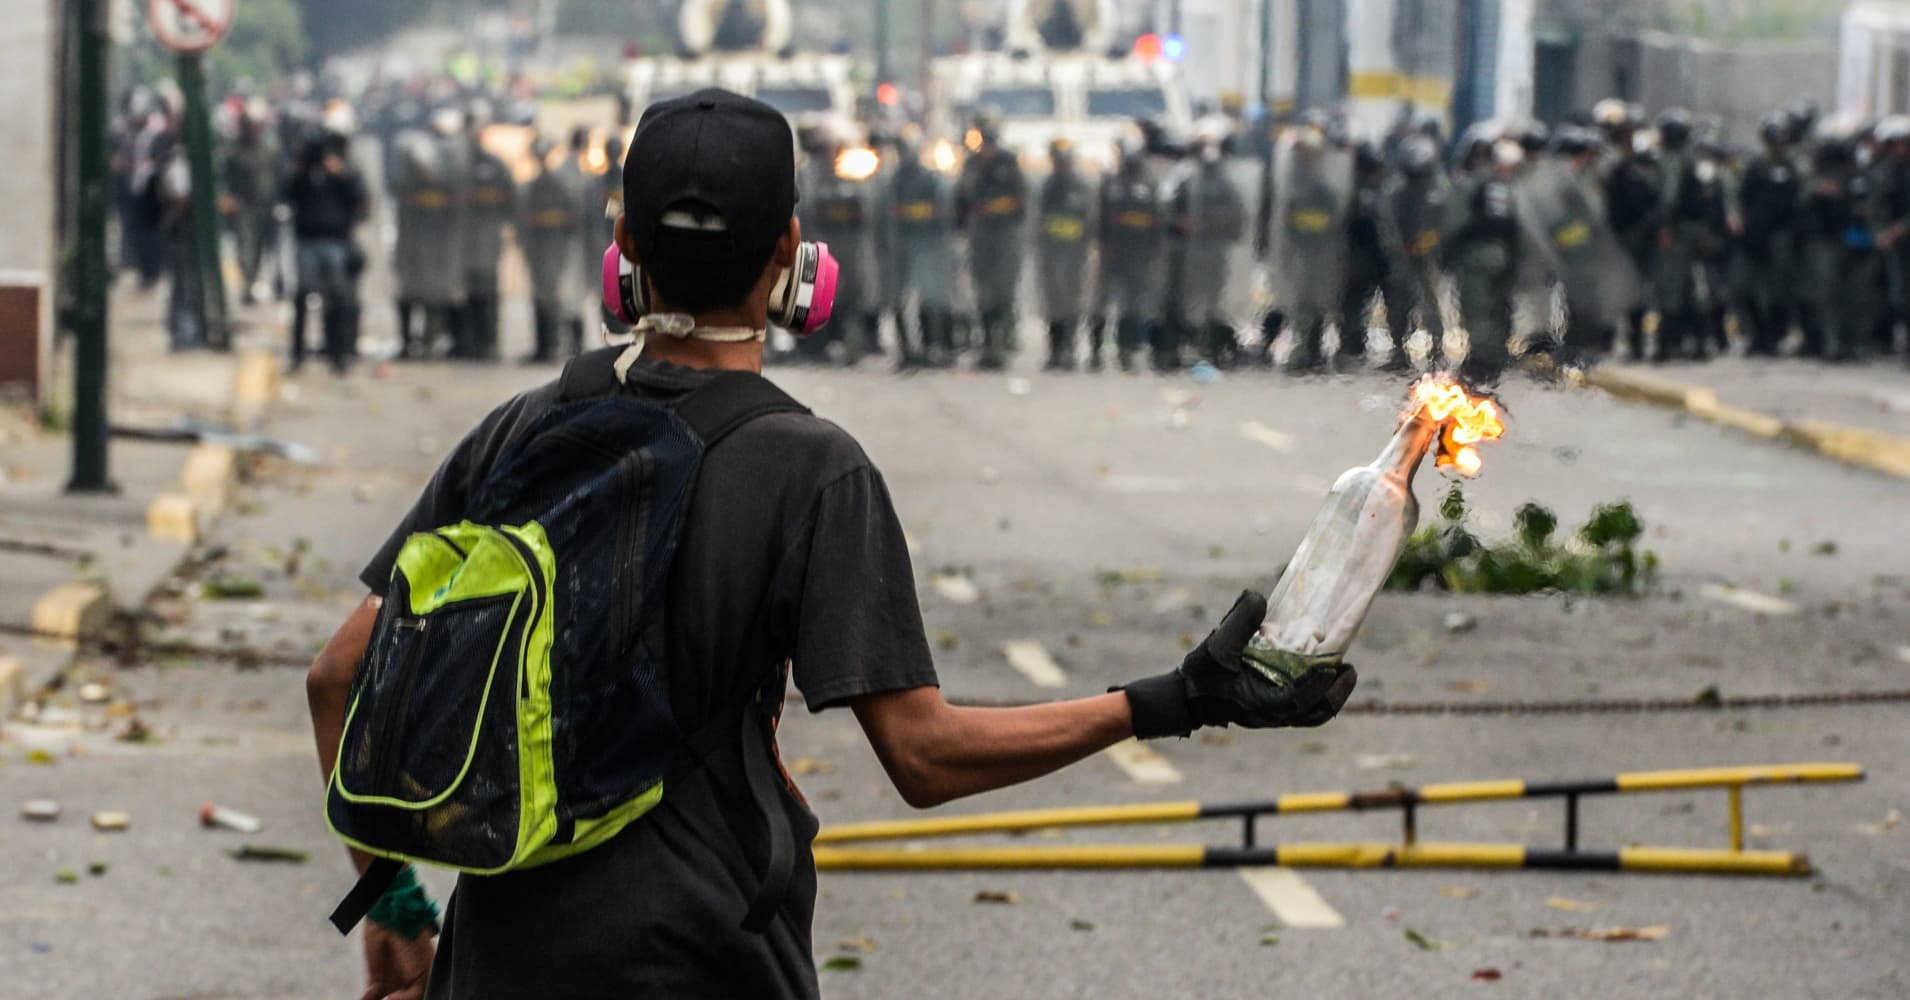 Clashes in Caracas as anti-Maduro protesters take to the streets